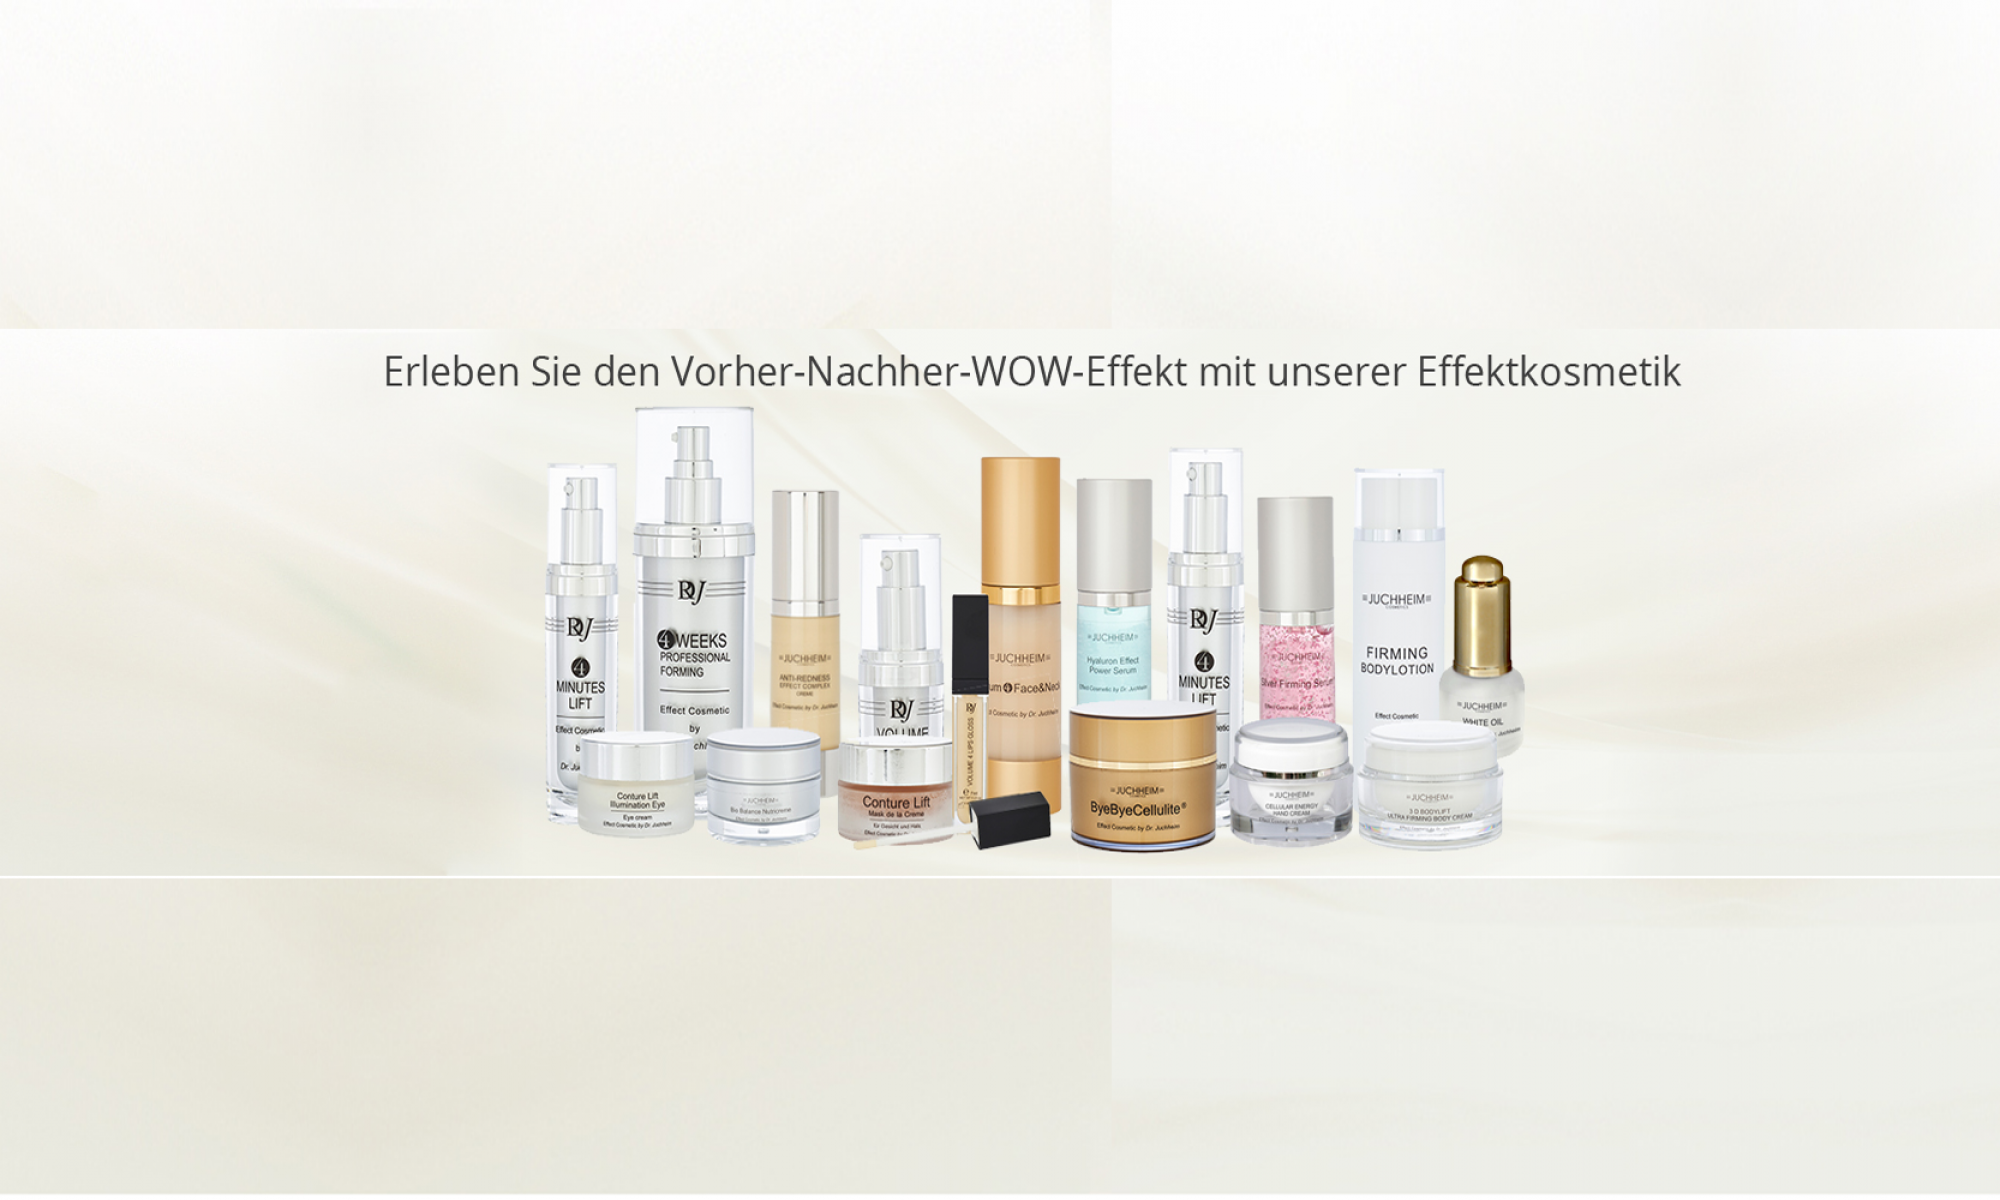 Effect cosmetics by Dr. med. Juchheim in Mainz, Wiesbaden, Frankfurt